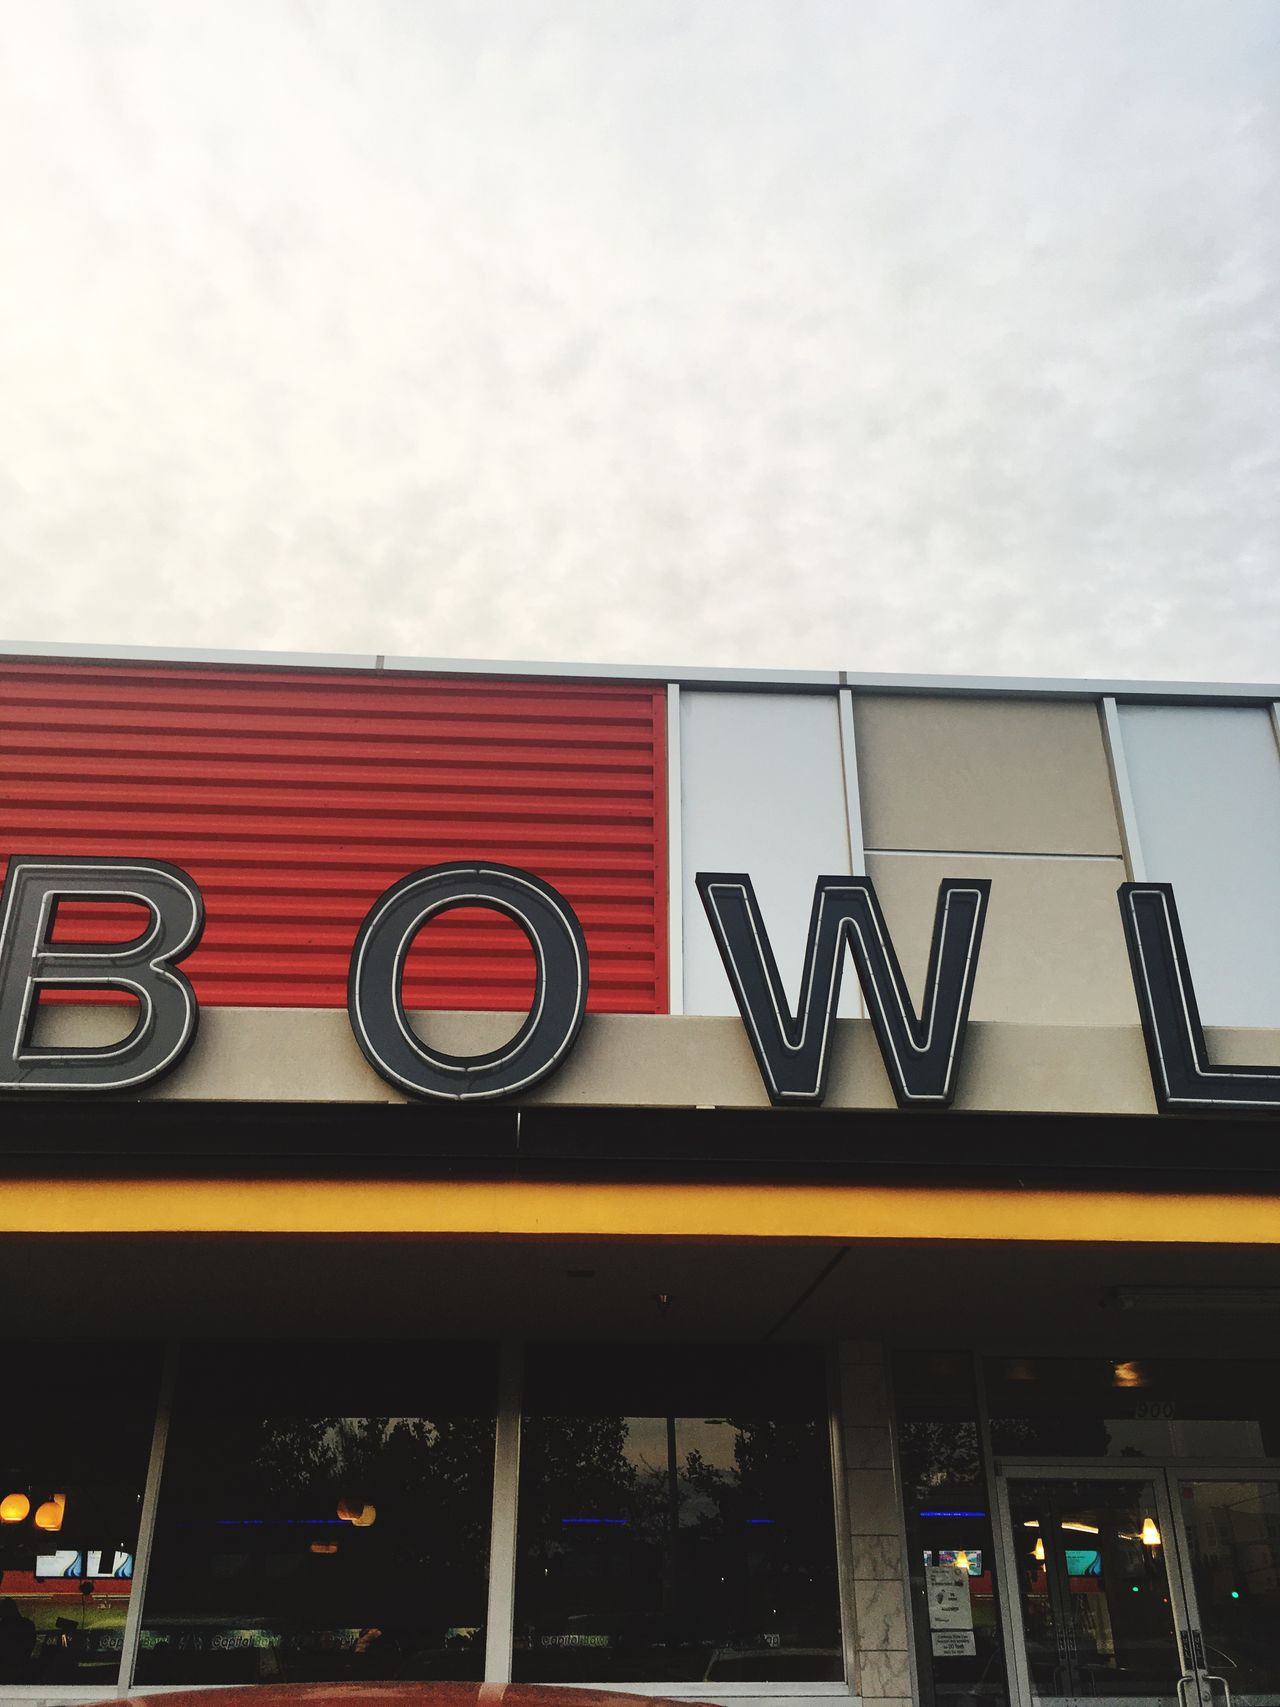 Bowling Alley Bowl Bowling Exterior Building